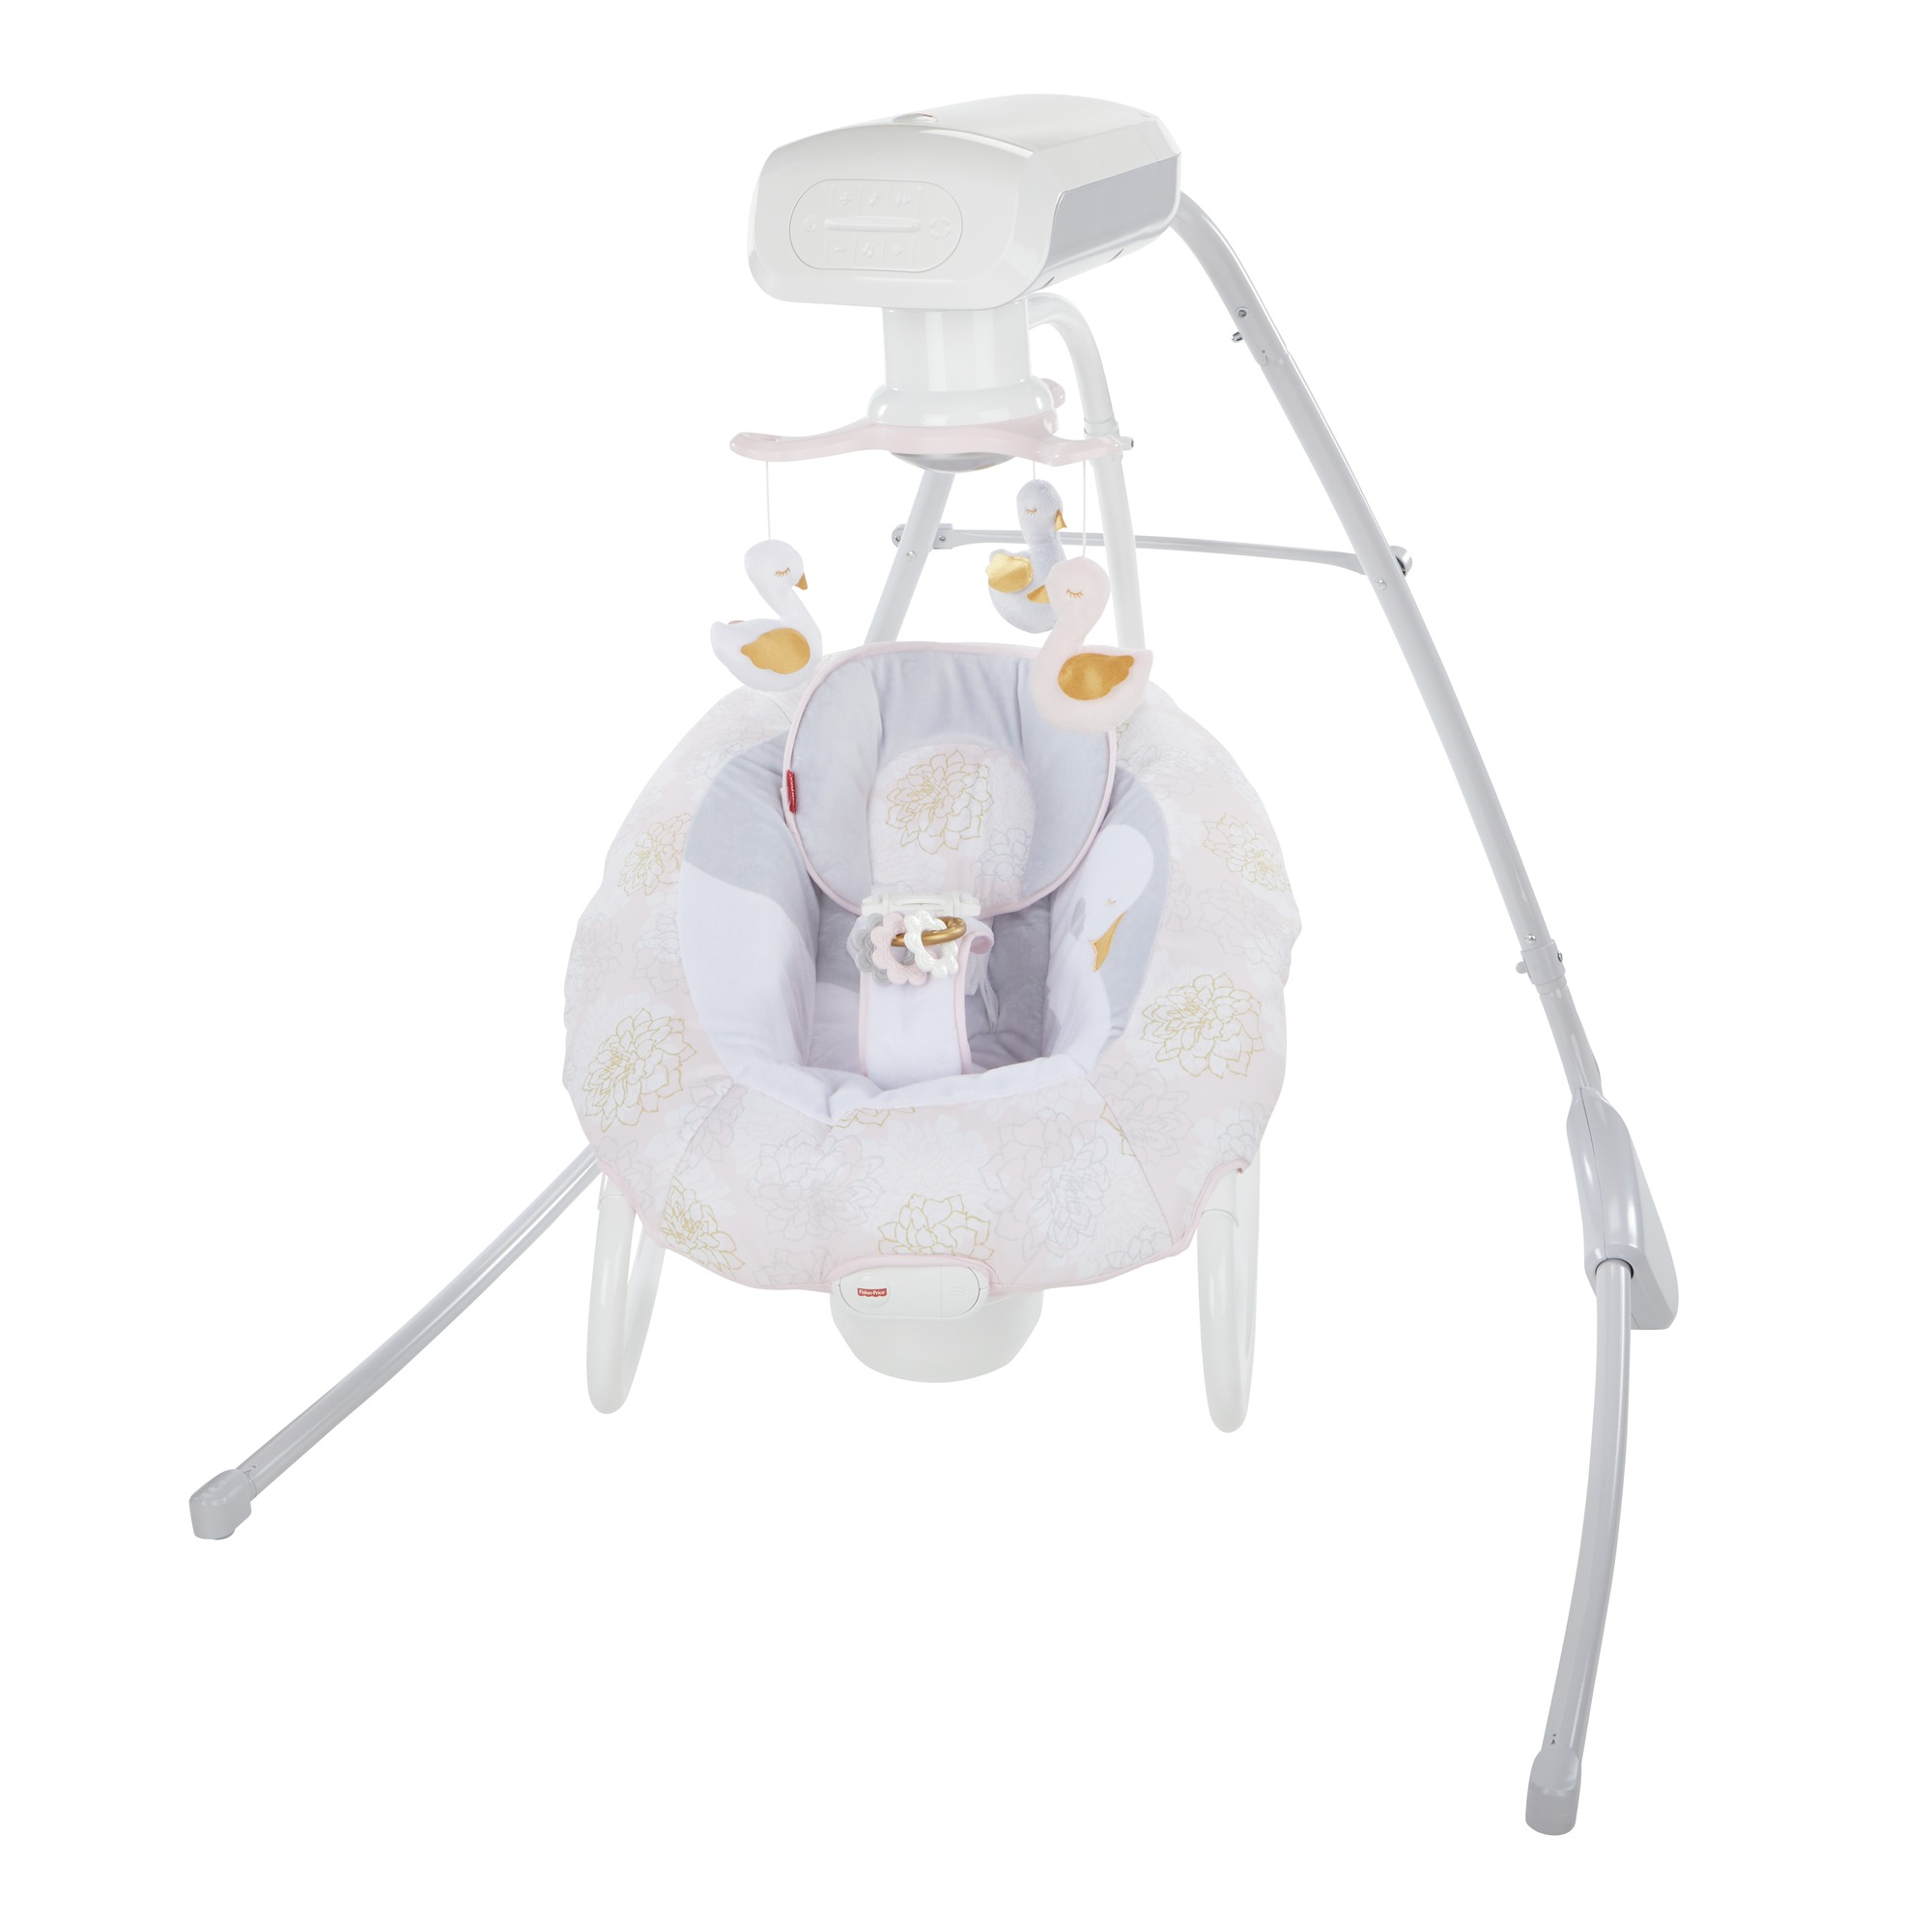 Fisher Price My Sweet Swan 2-in-1 Deluxe Cradle 'n Swing by Fisher-Price